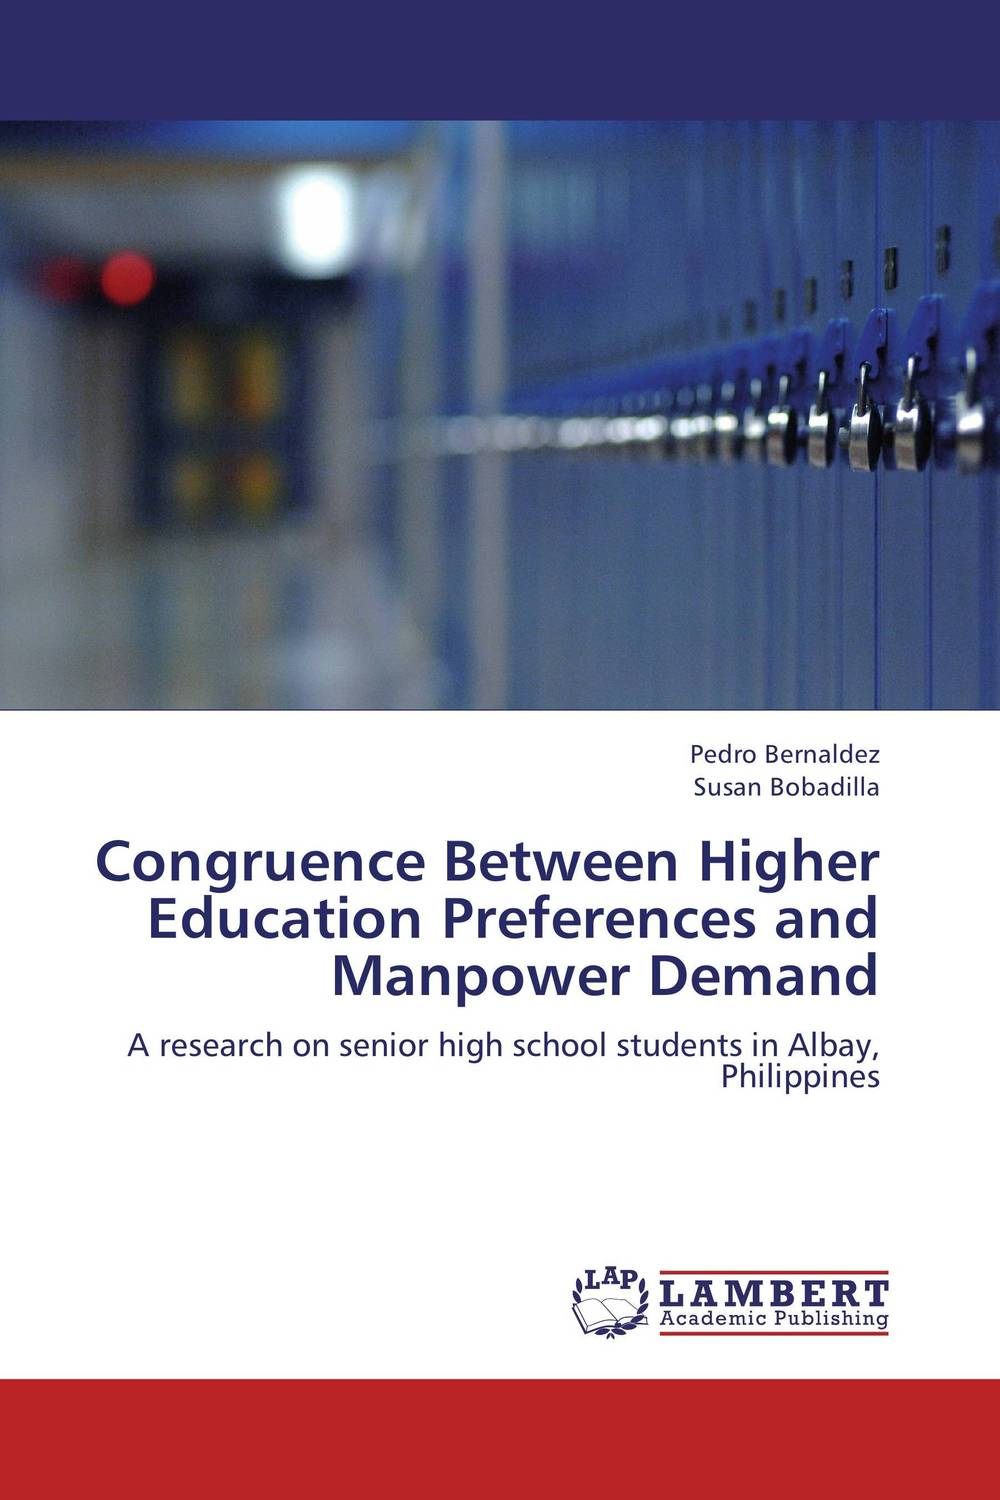 Congruence Between Higher Education Preferences and Manpower Demand elt and development of communicative abilities of university students